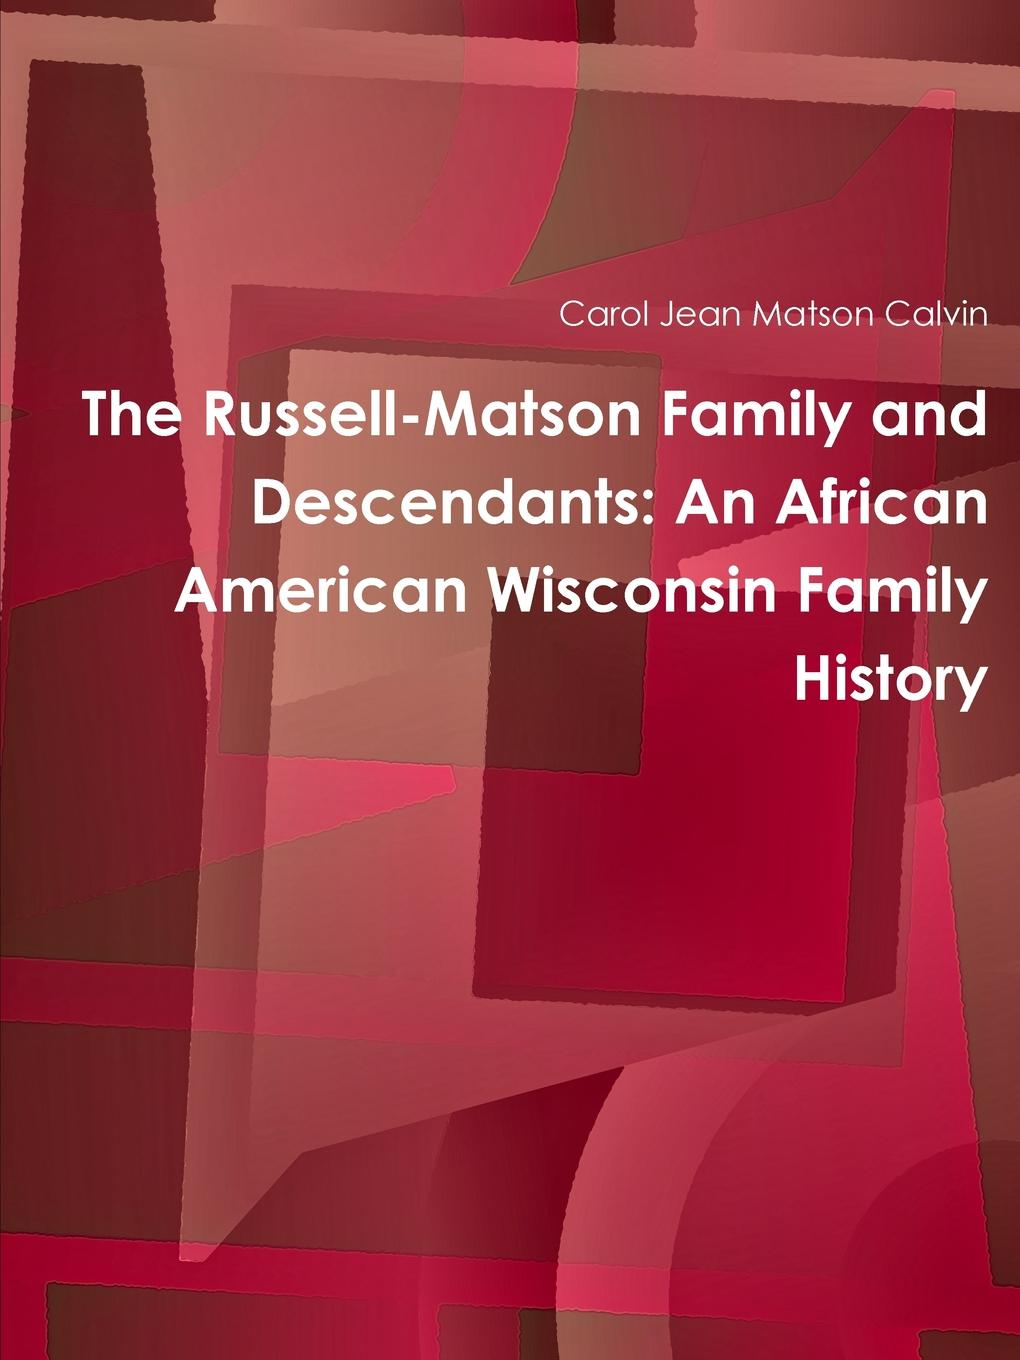 Carol Jean Matson Calvin The Russell-Matson Family and Descendants. An African American Wisconsin Family History